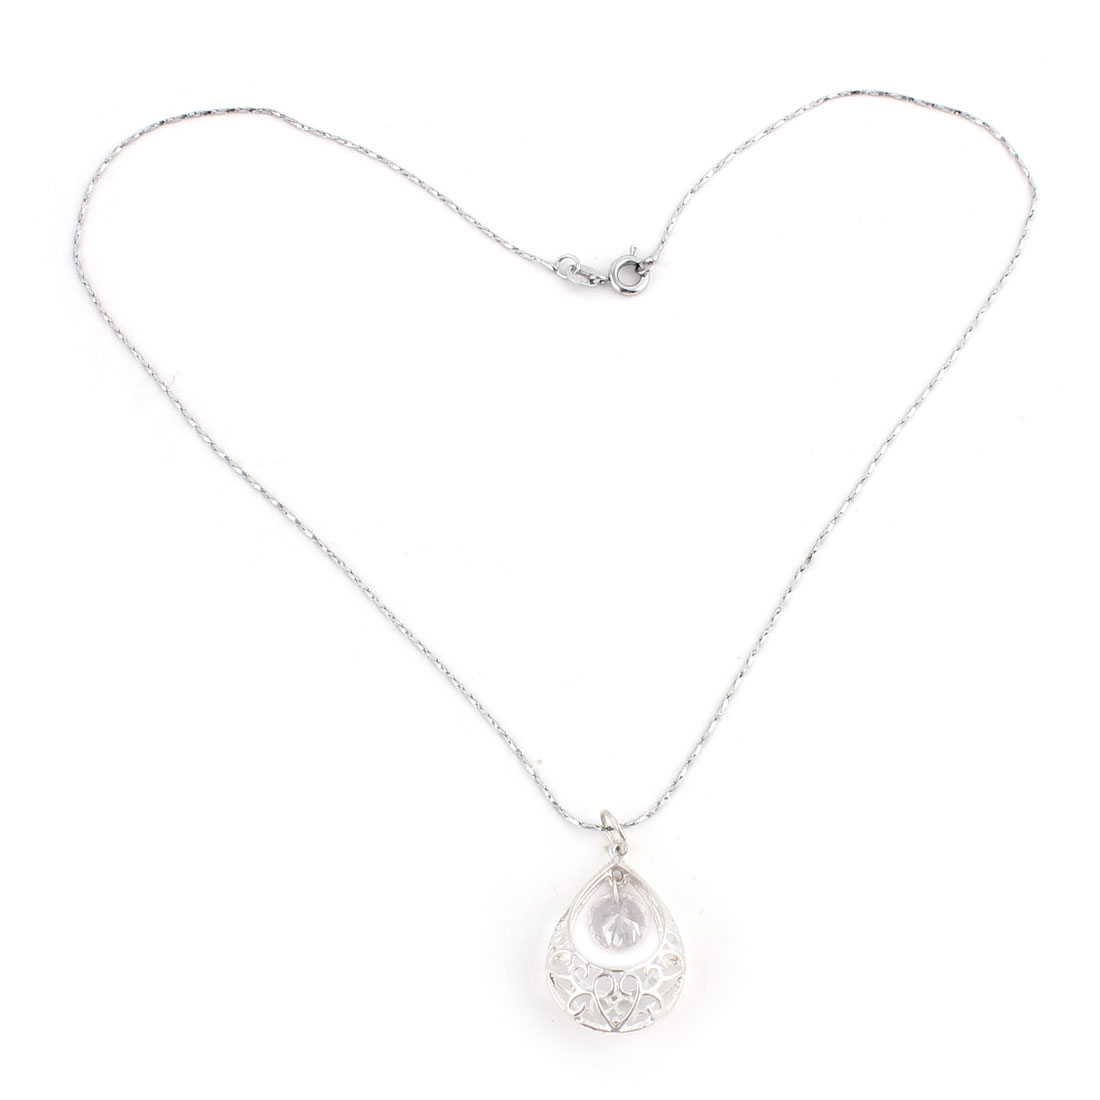 Lady Water Drop Shaped Hollow Out Shining Rhinestone Pendant Necklace Chain